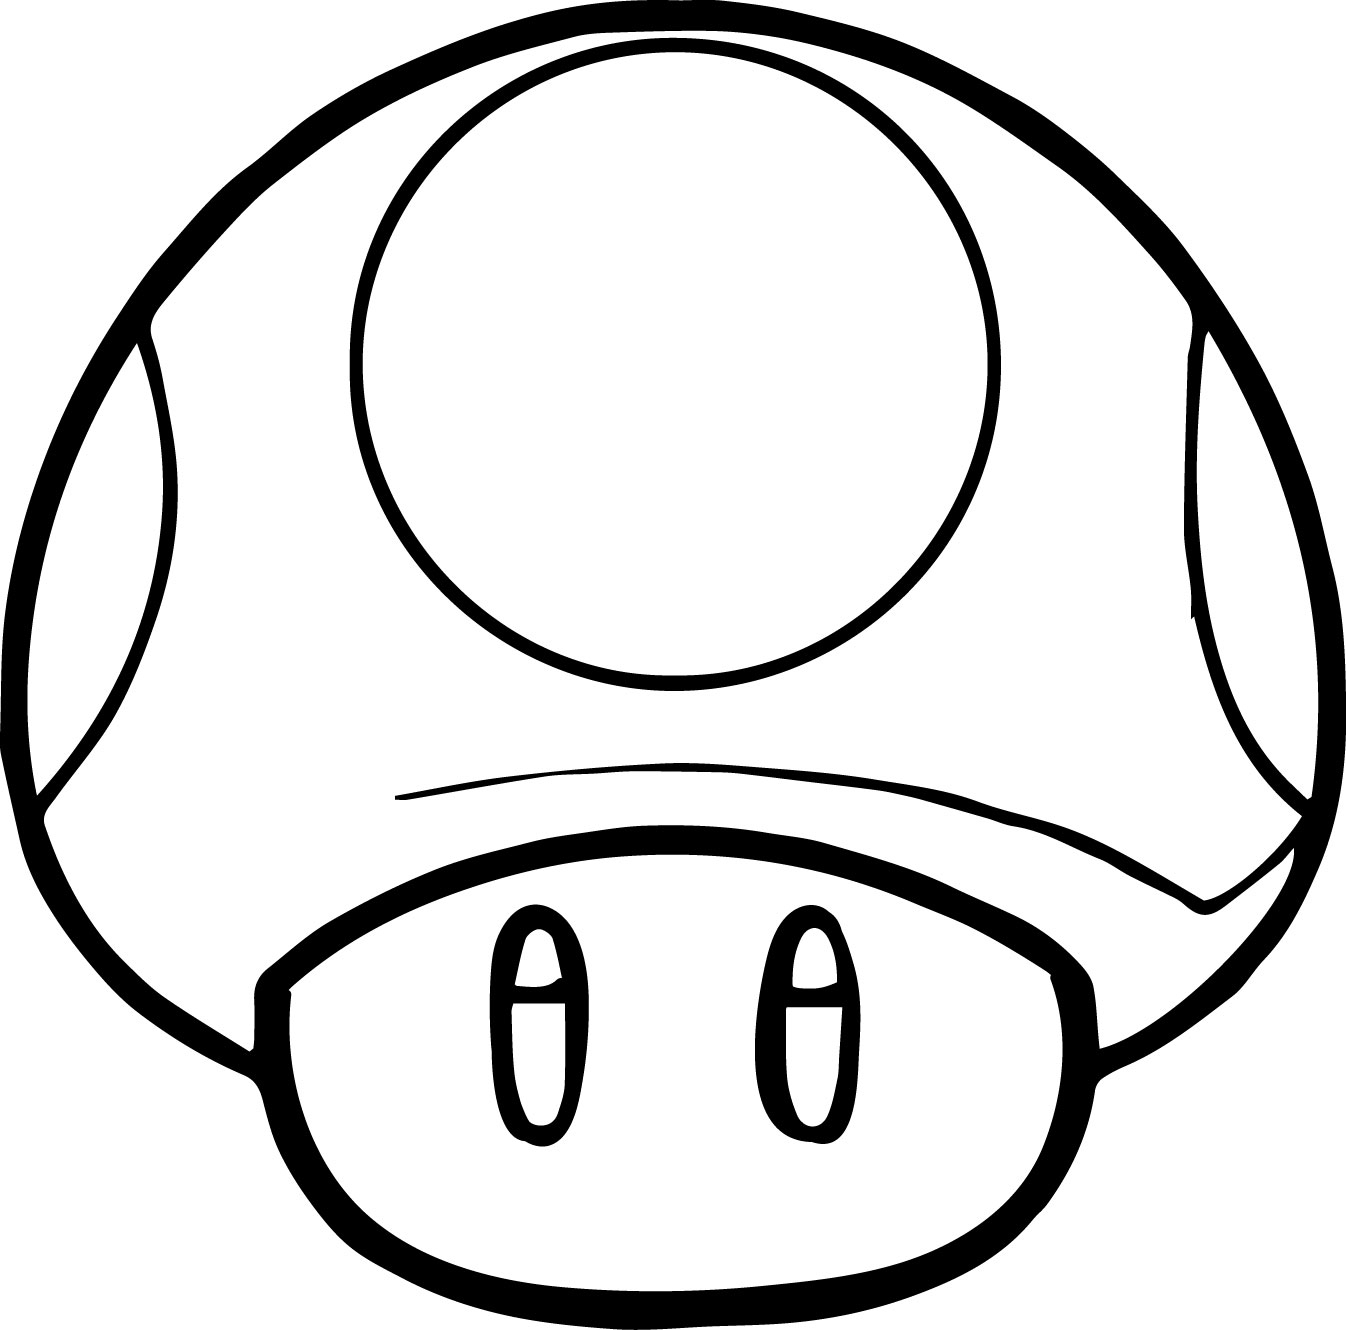 Unique Mario Bros Coloring Pages Fire Flower Design Printable Of Toad Mario Drawing at Getdrawings Gallery